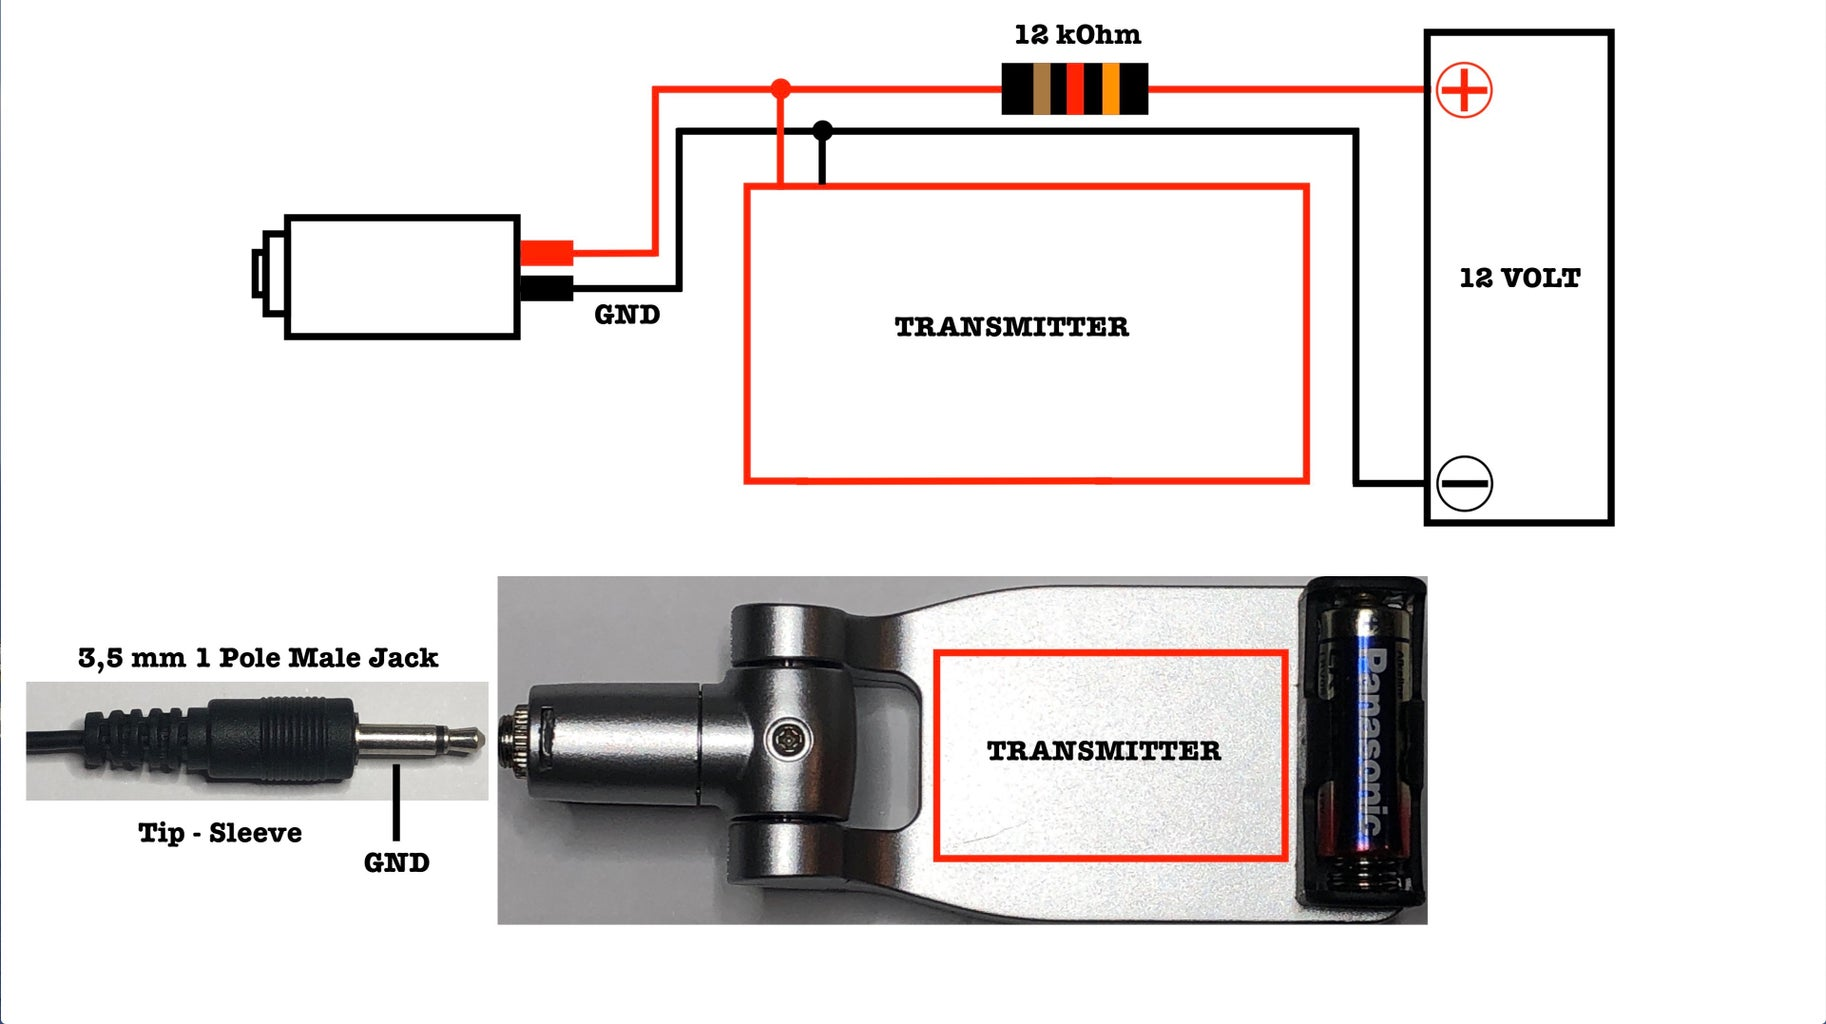 Transmitter Circuit and Components